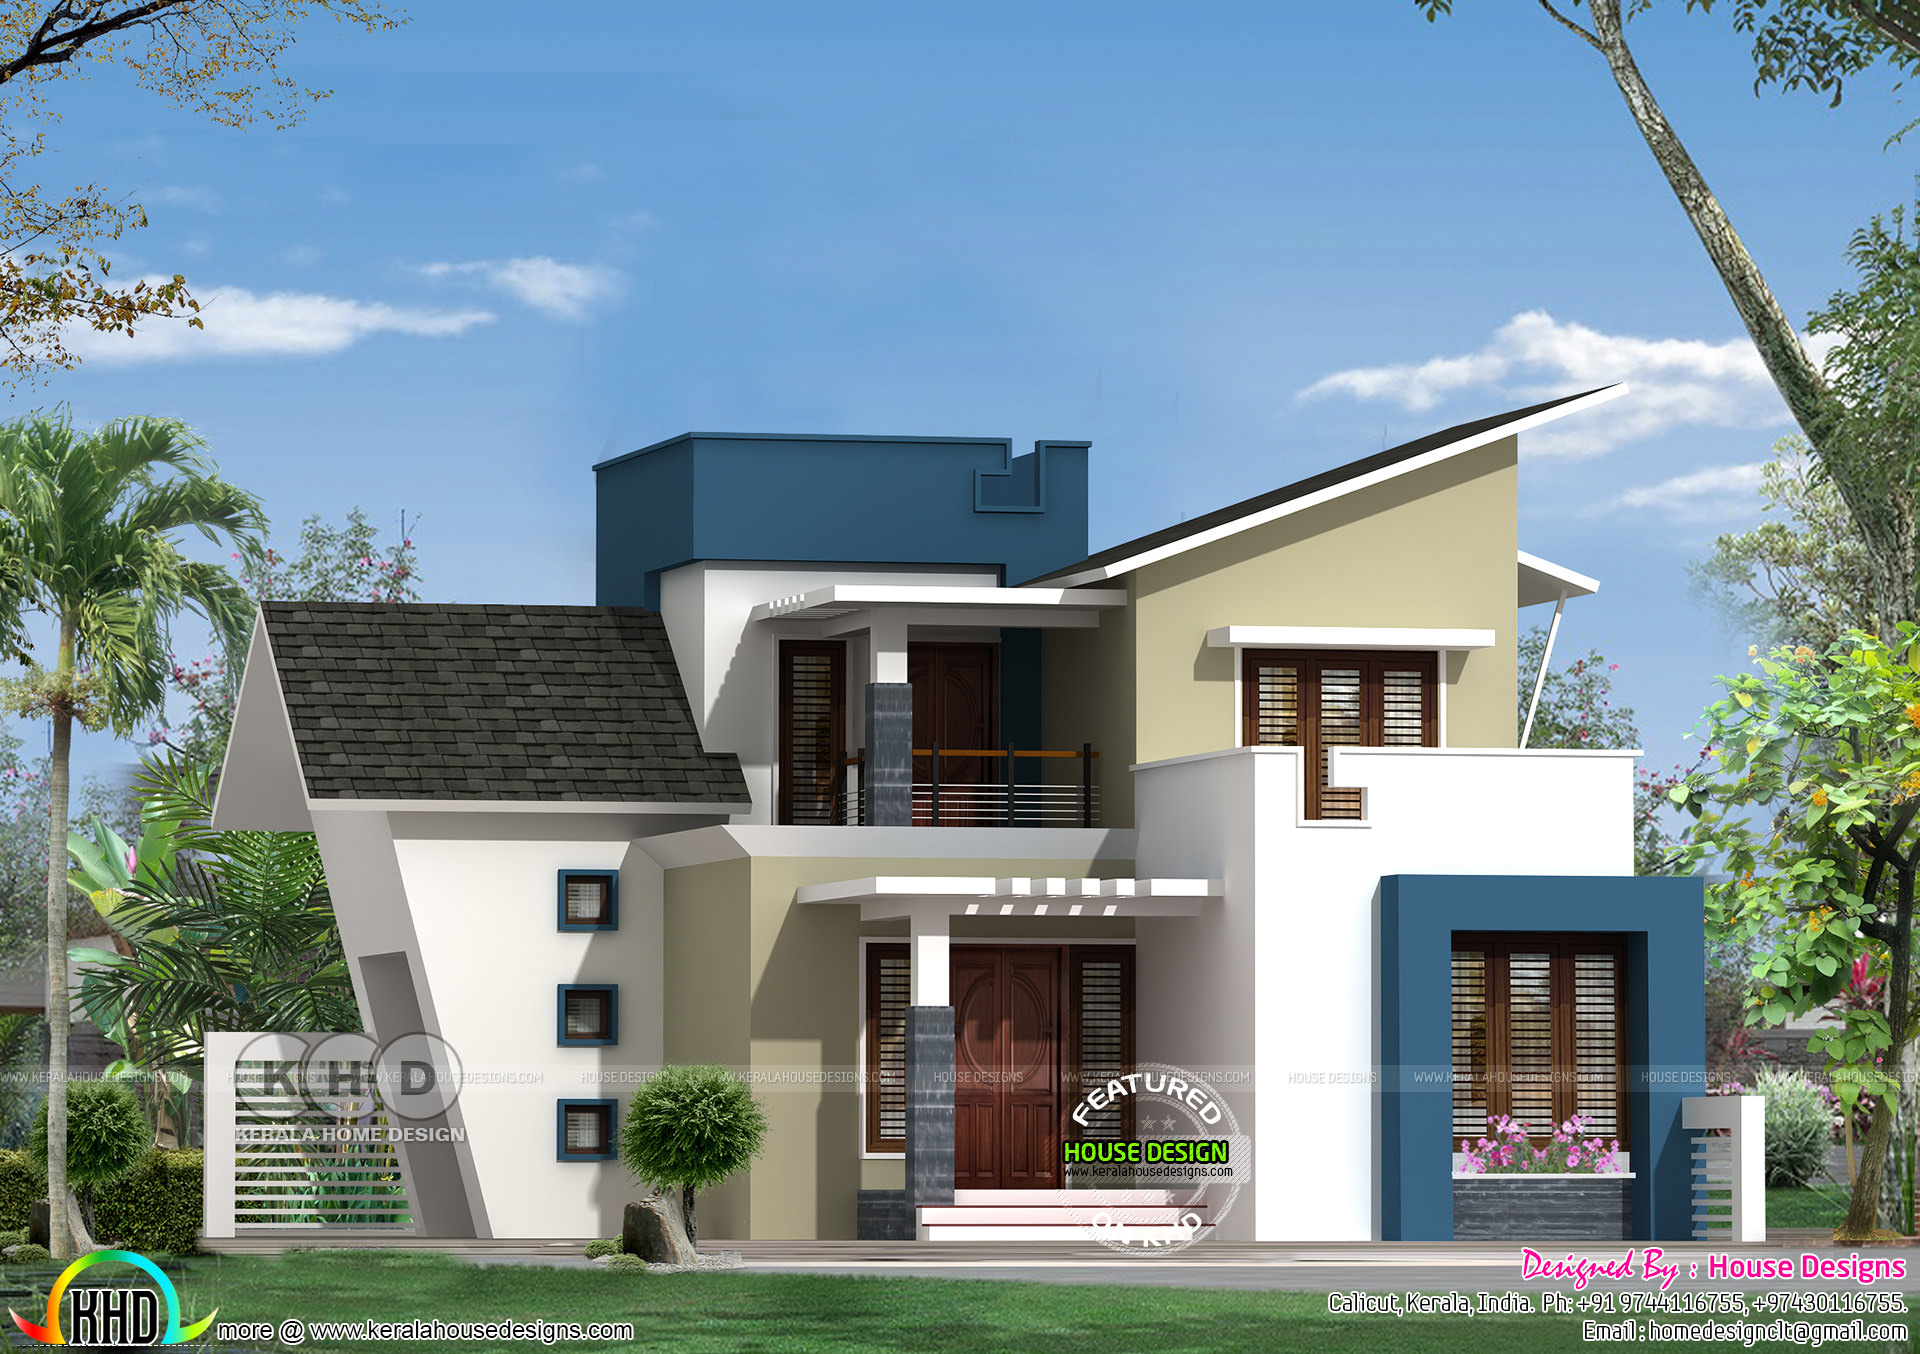 New home design by 39 house designs 39 from calicut kerala for New home design in kerala